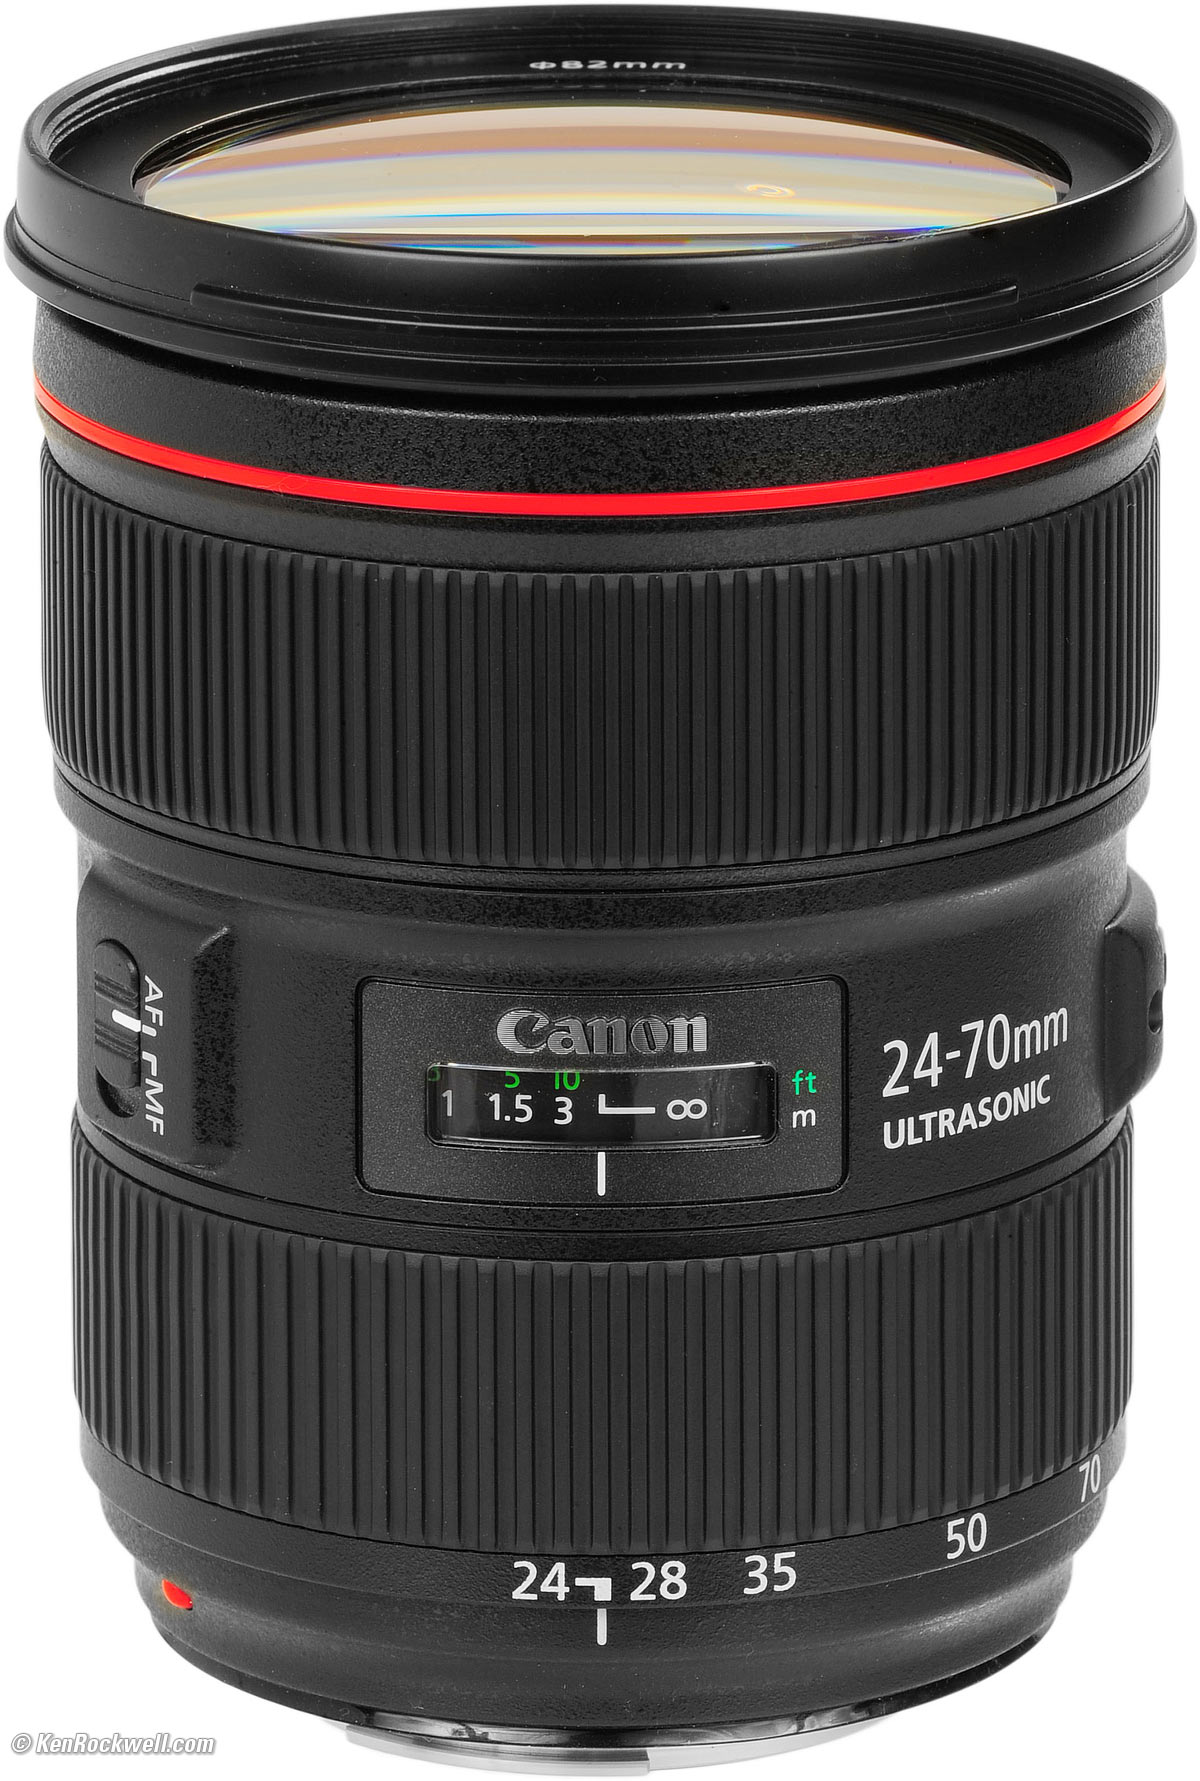 0068296039 - CANON EF 24-70 2.8 L II USM (AIP)